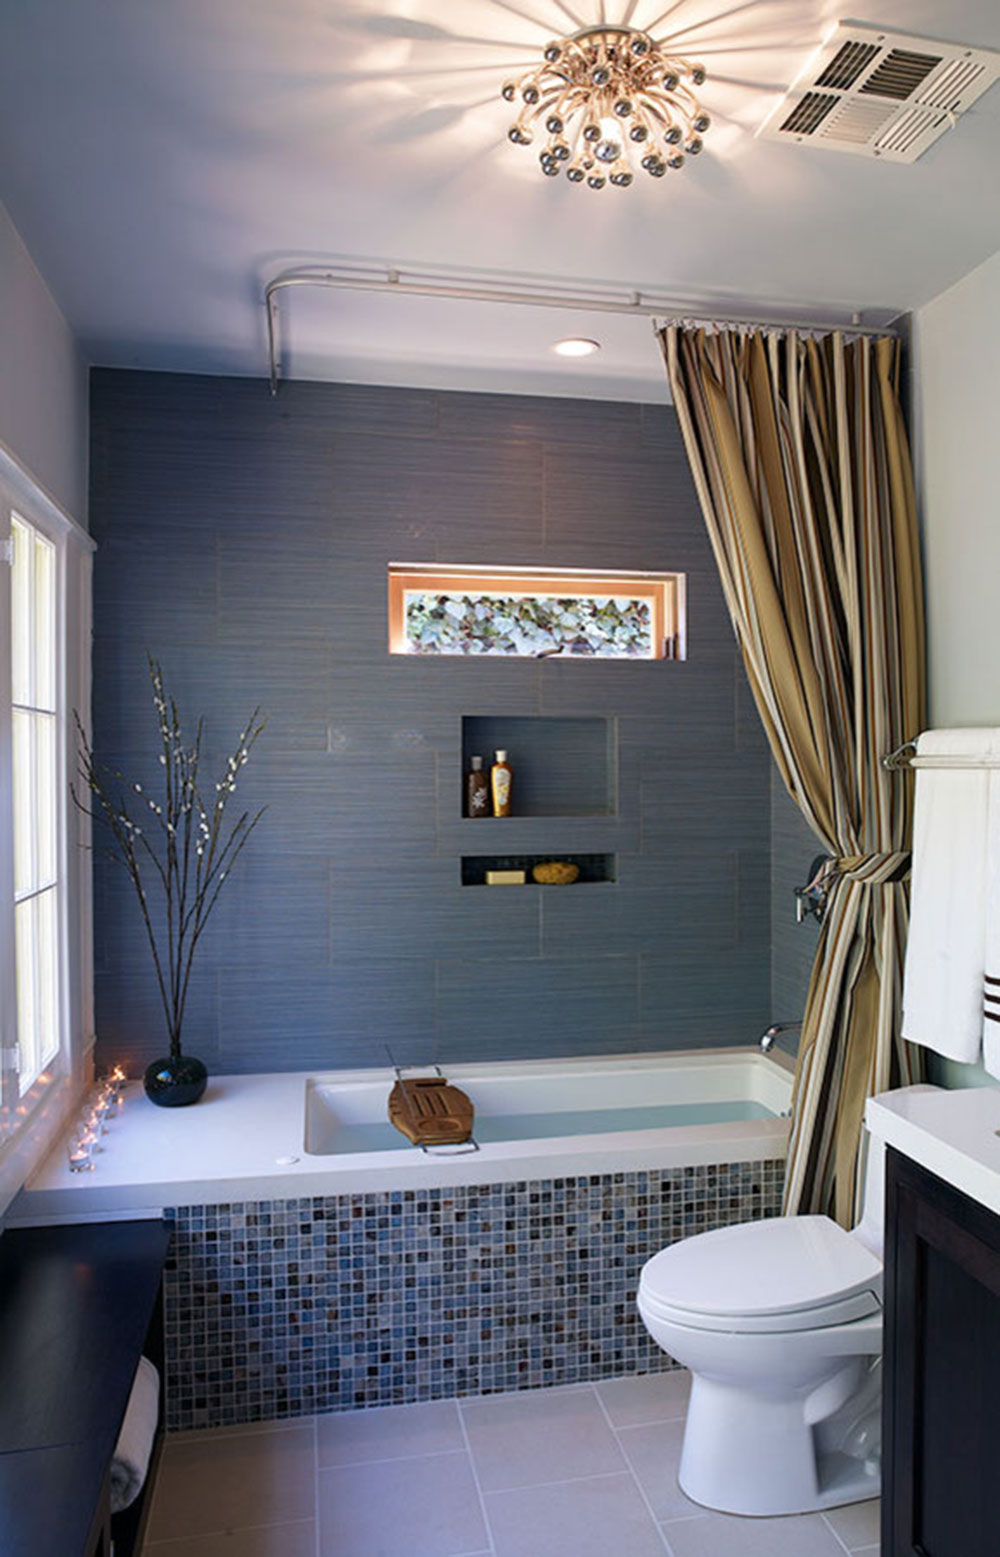 Enhance your bathroom look with trendy shower curtains13 trendy shower curtains for your bathroom